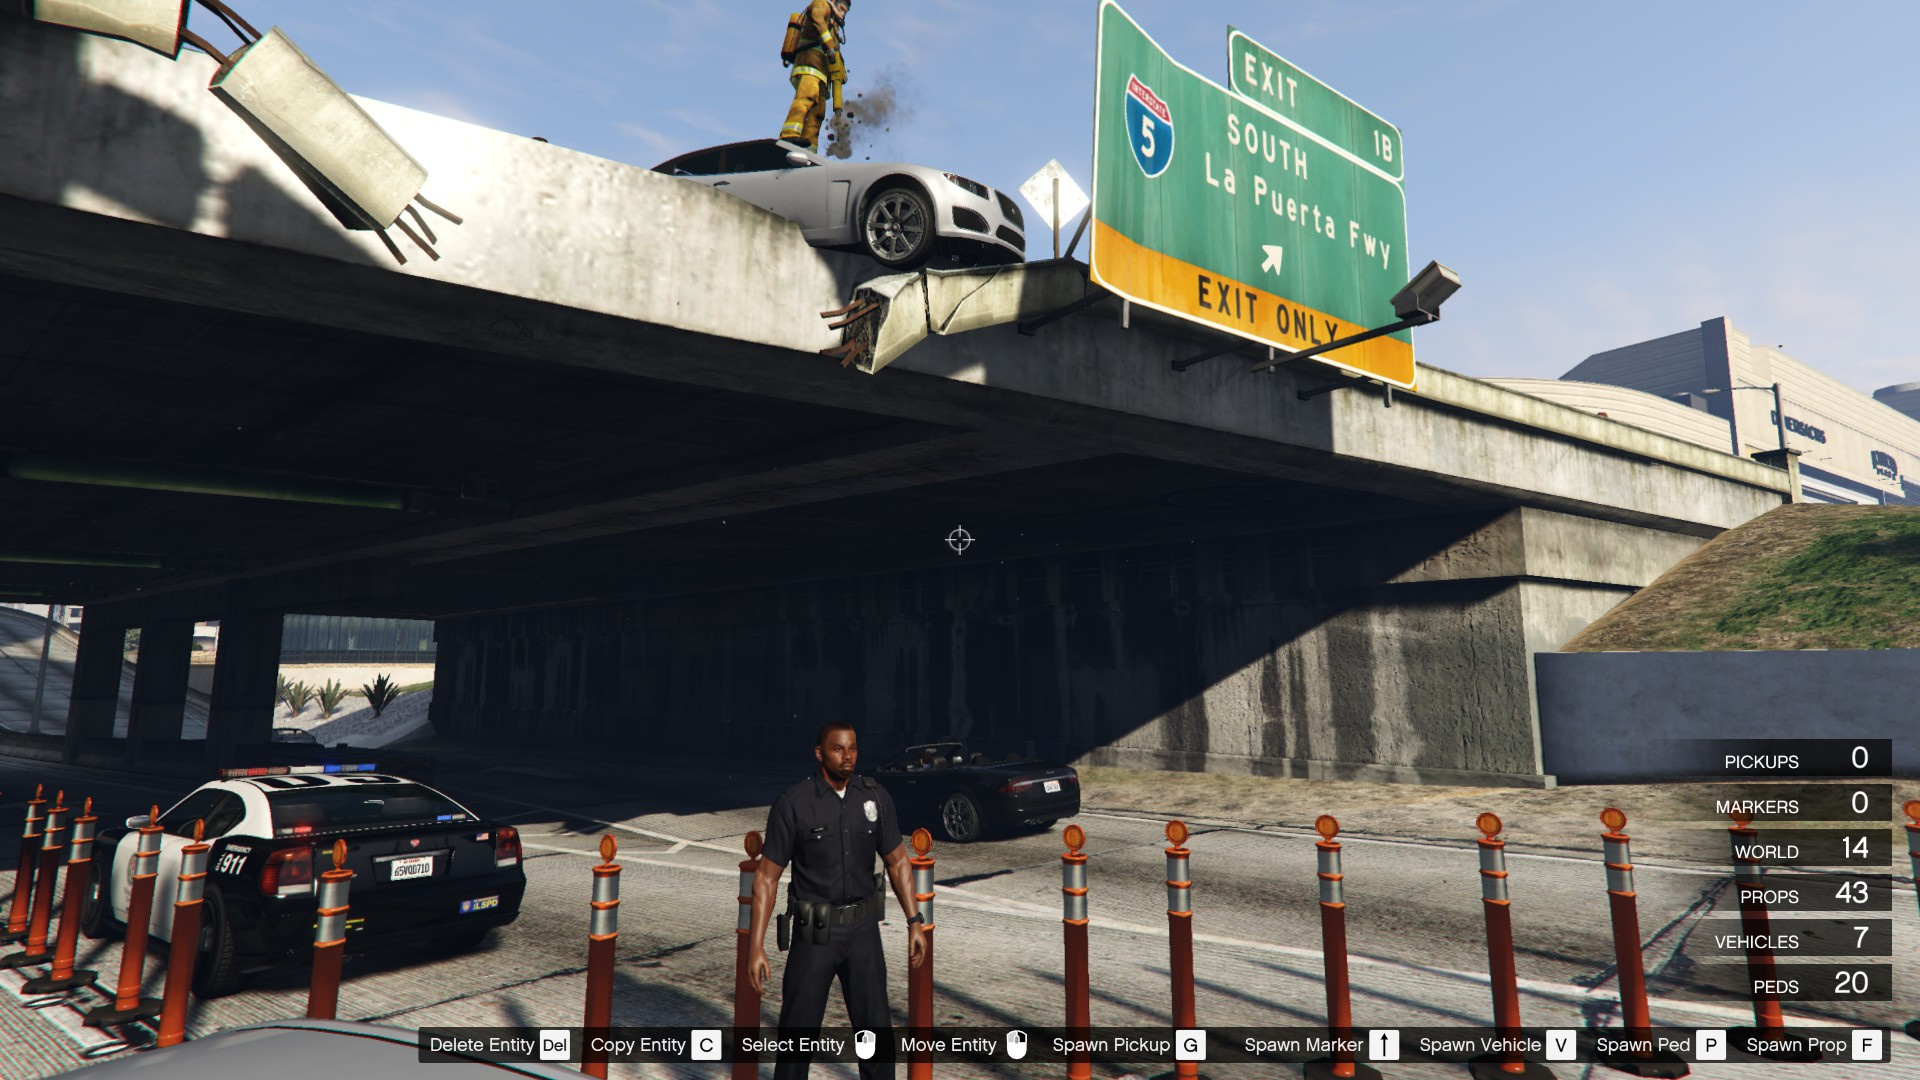 Bridge Car Crash [Map Editor] - GTA5-Mods.com